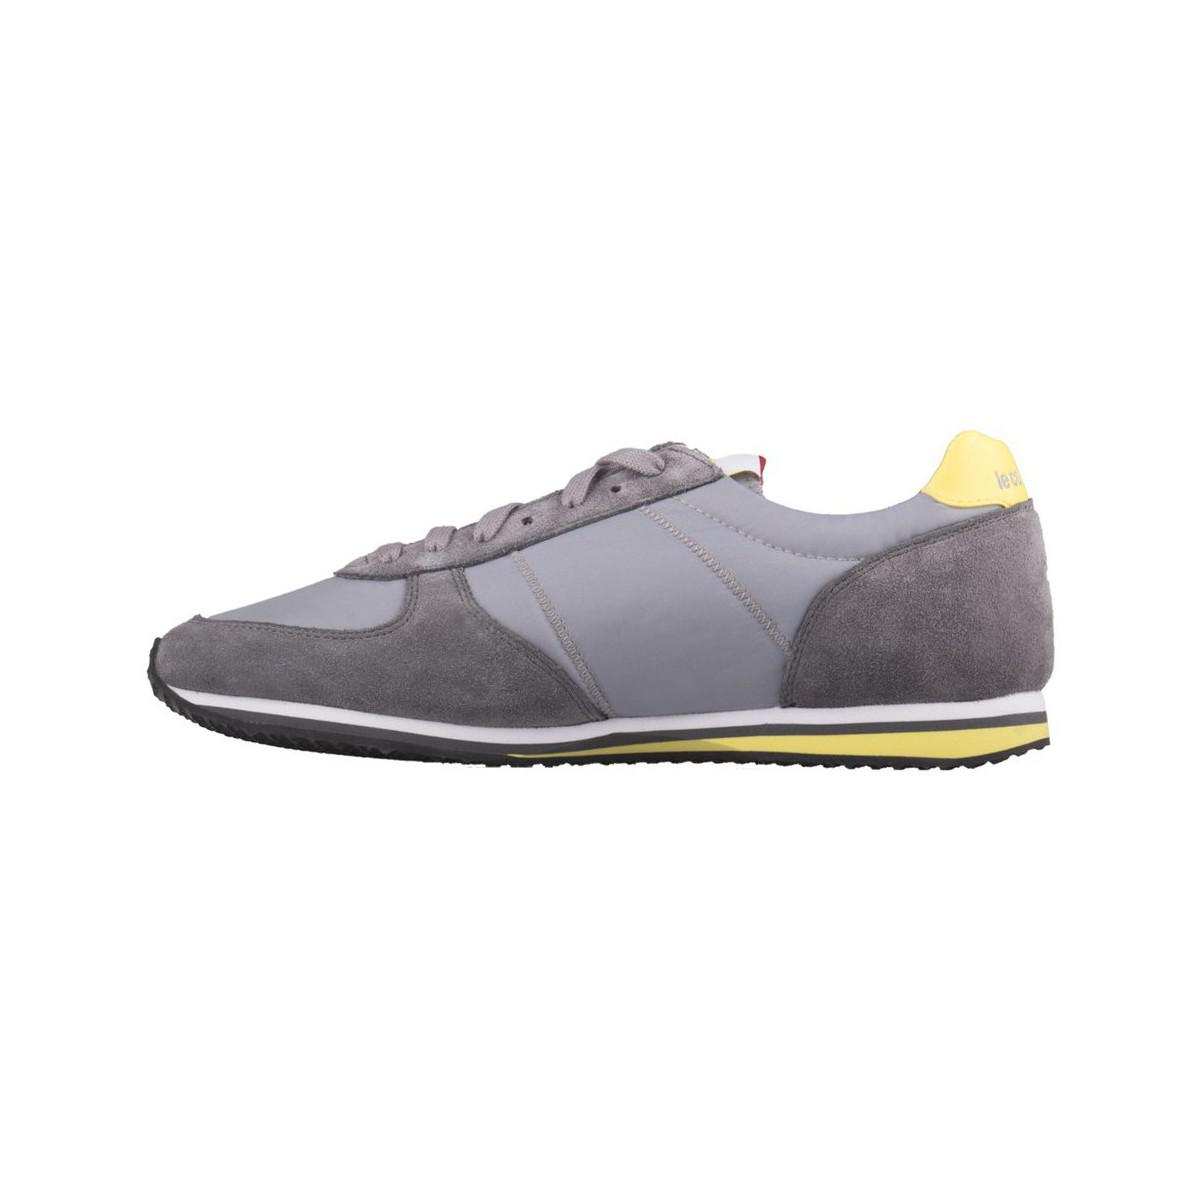 Le Coq Sportif Bolivar Grey Women's Mid Boots In Yellow